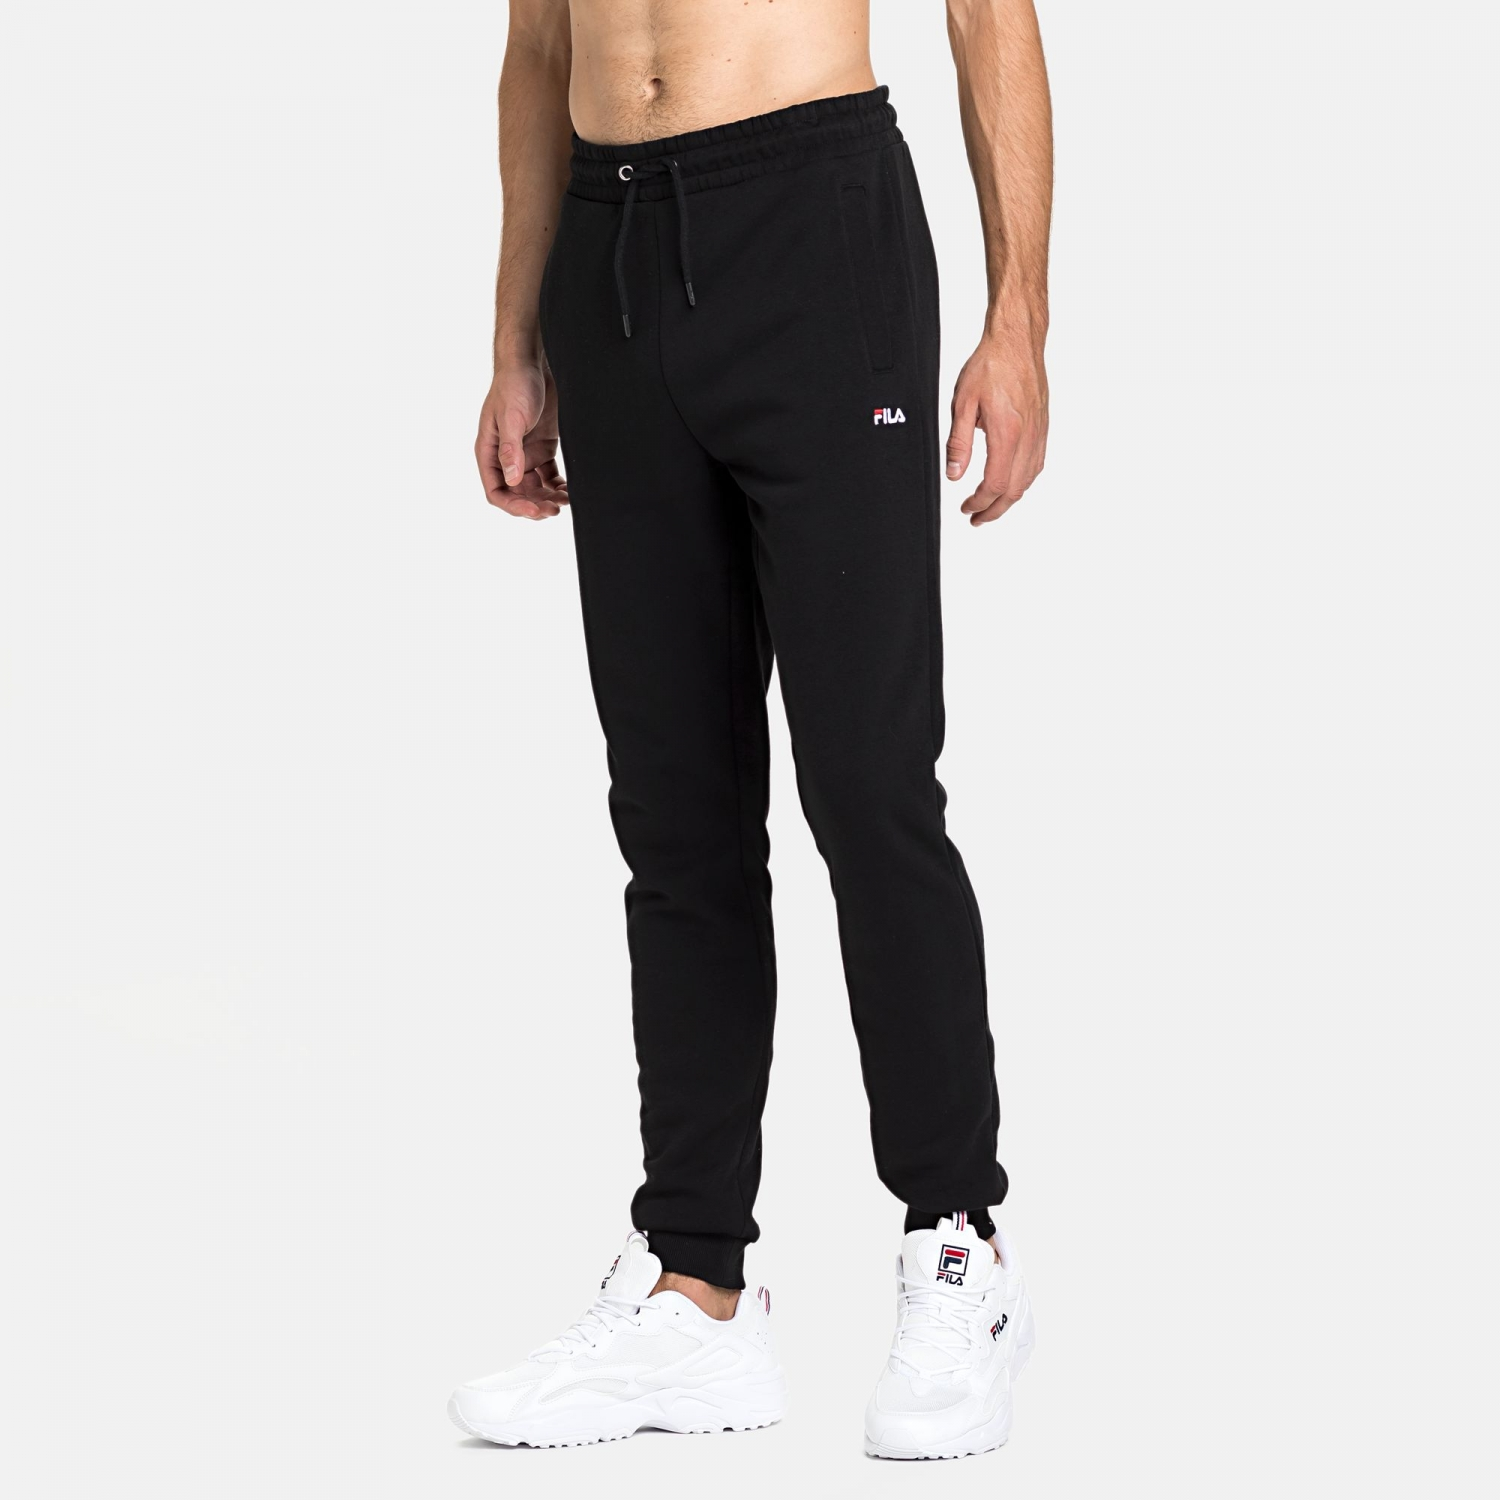 Fila Edan Sweat Pants black Bild 1